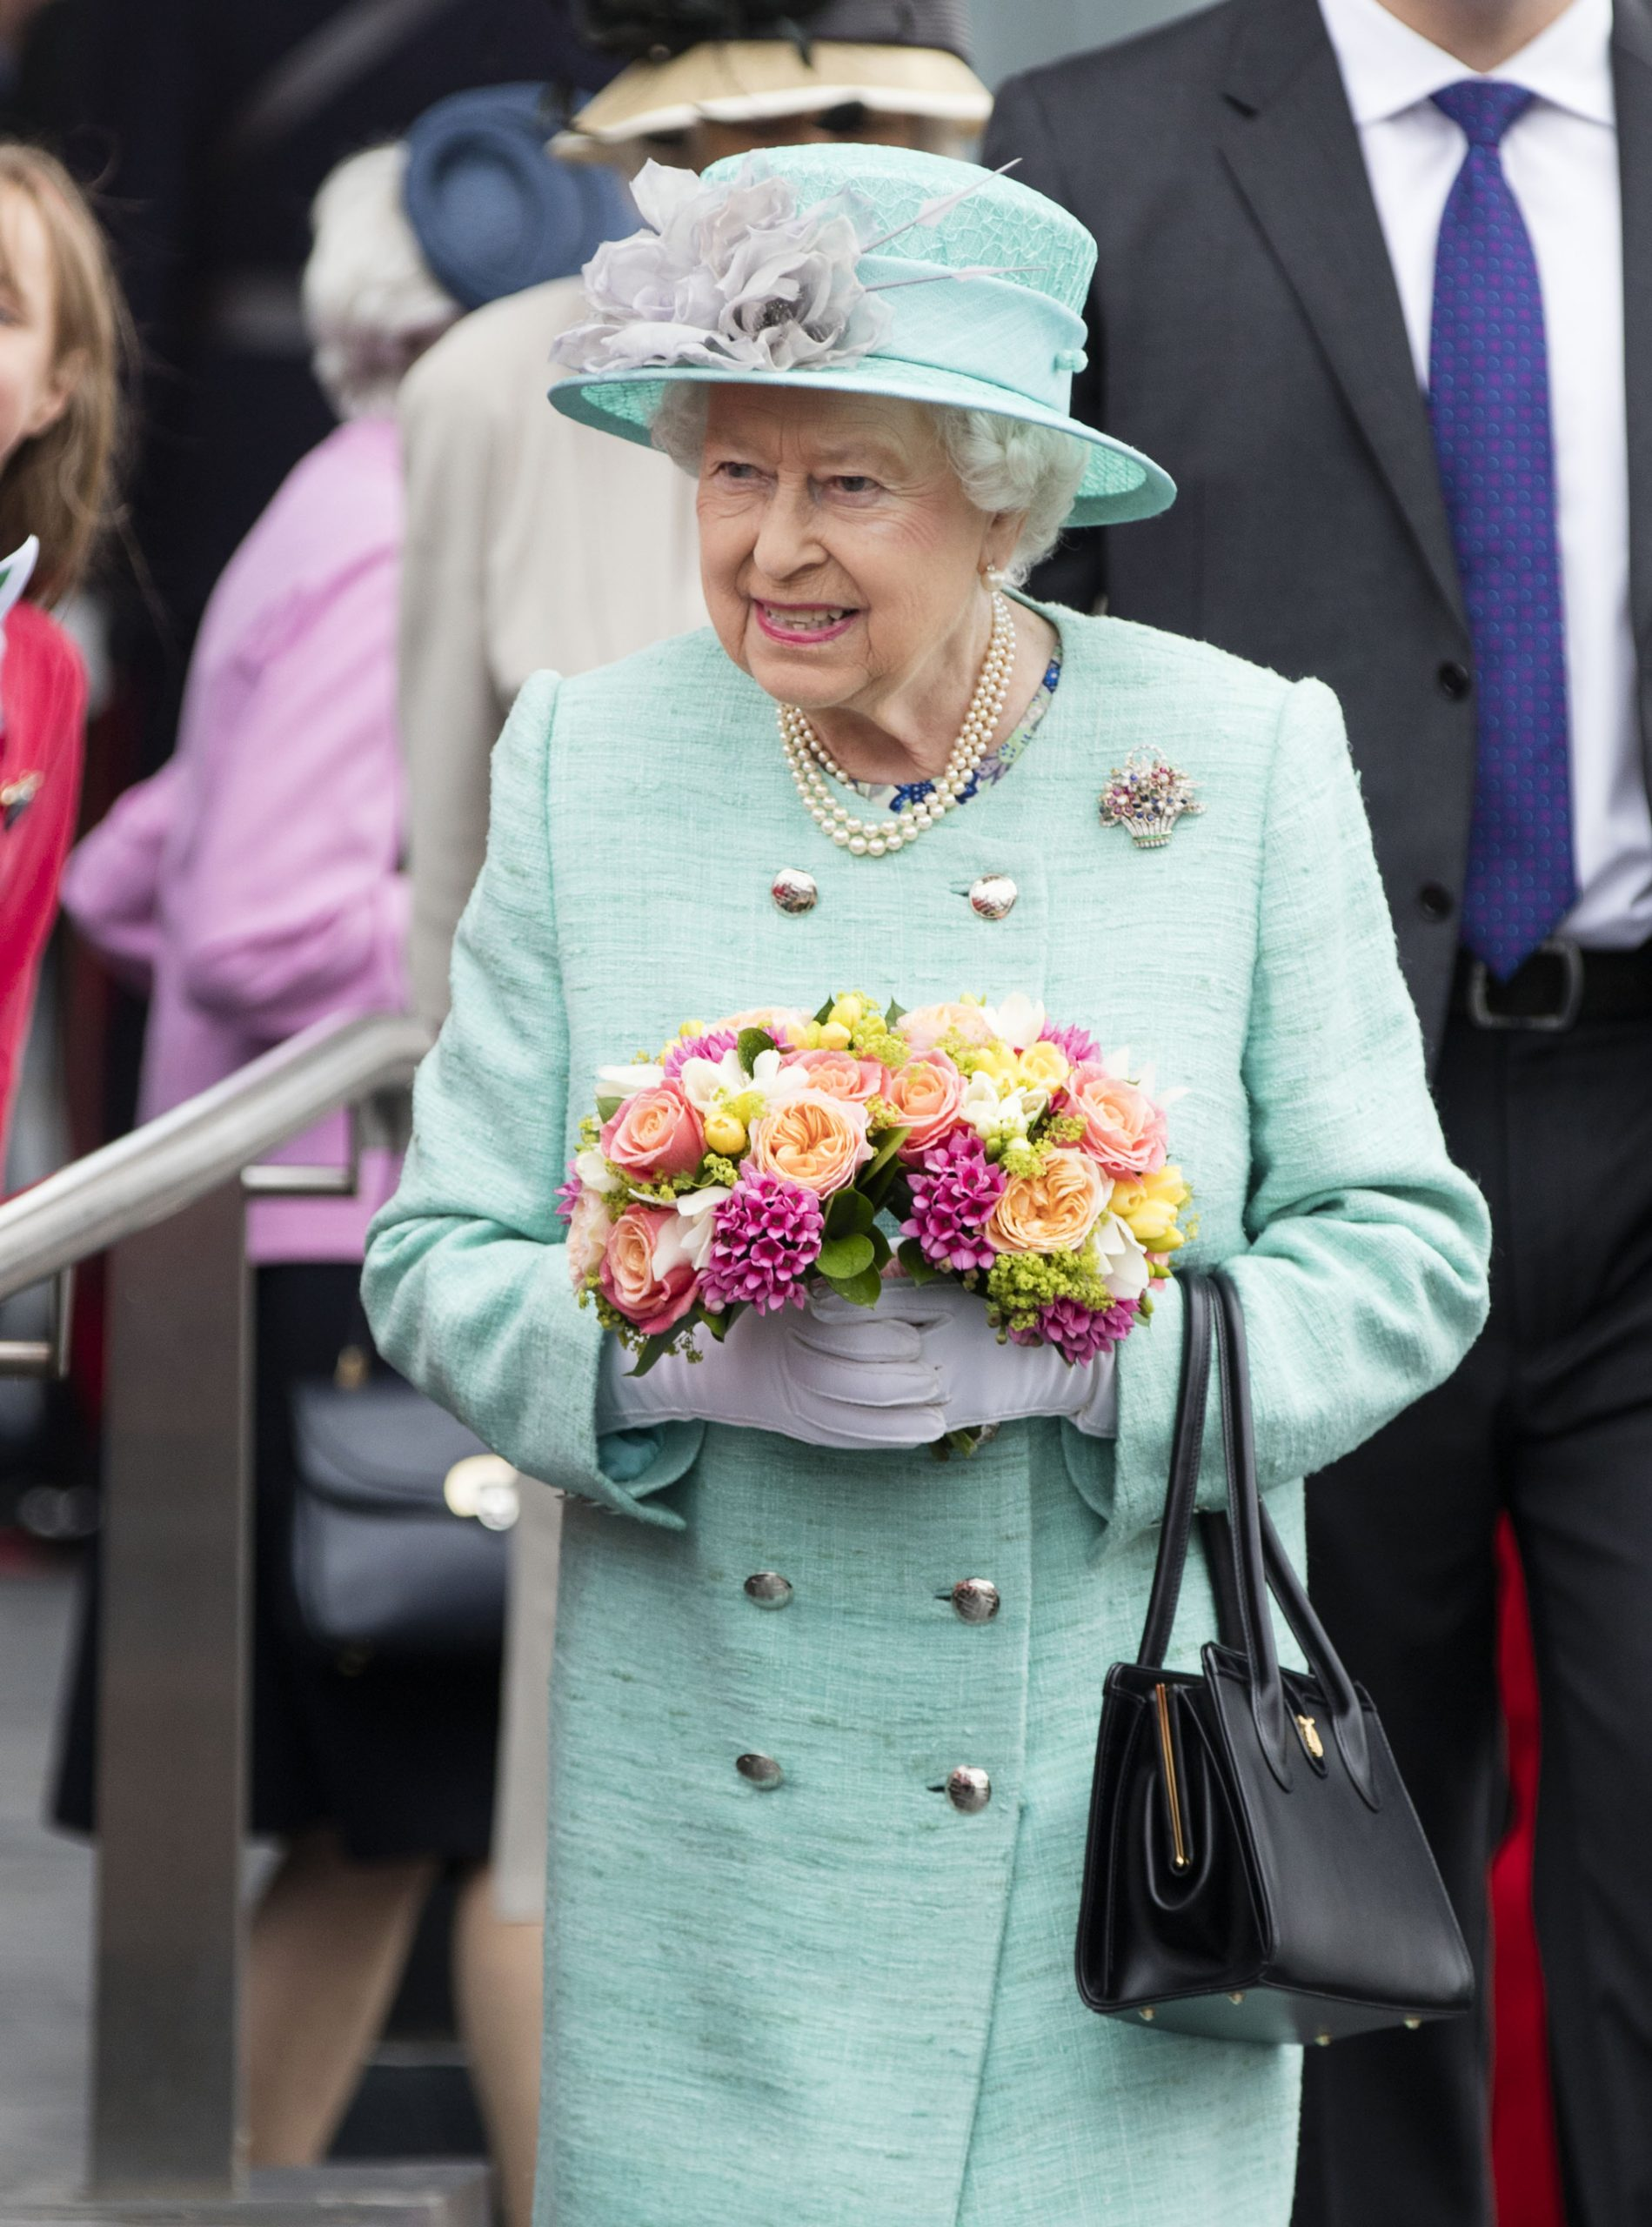 how to write to the Queen Elizabeth II